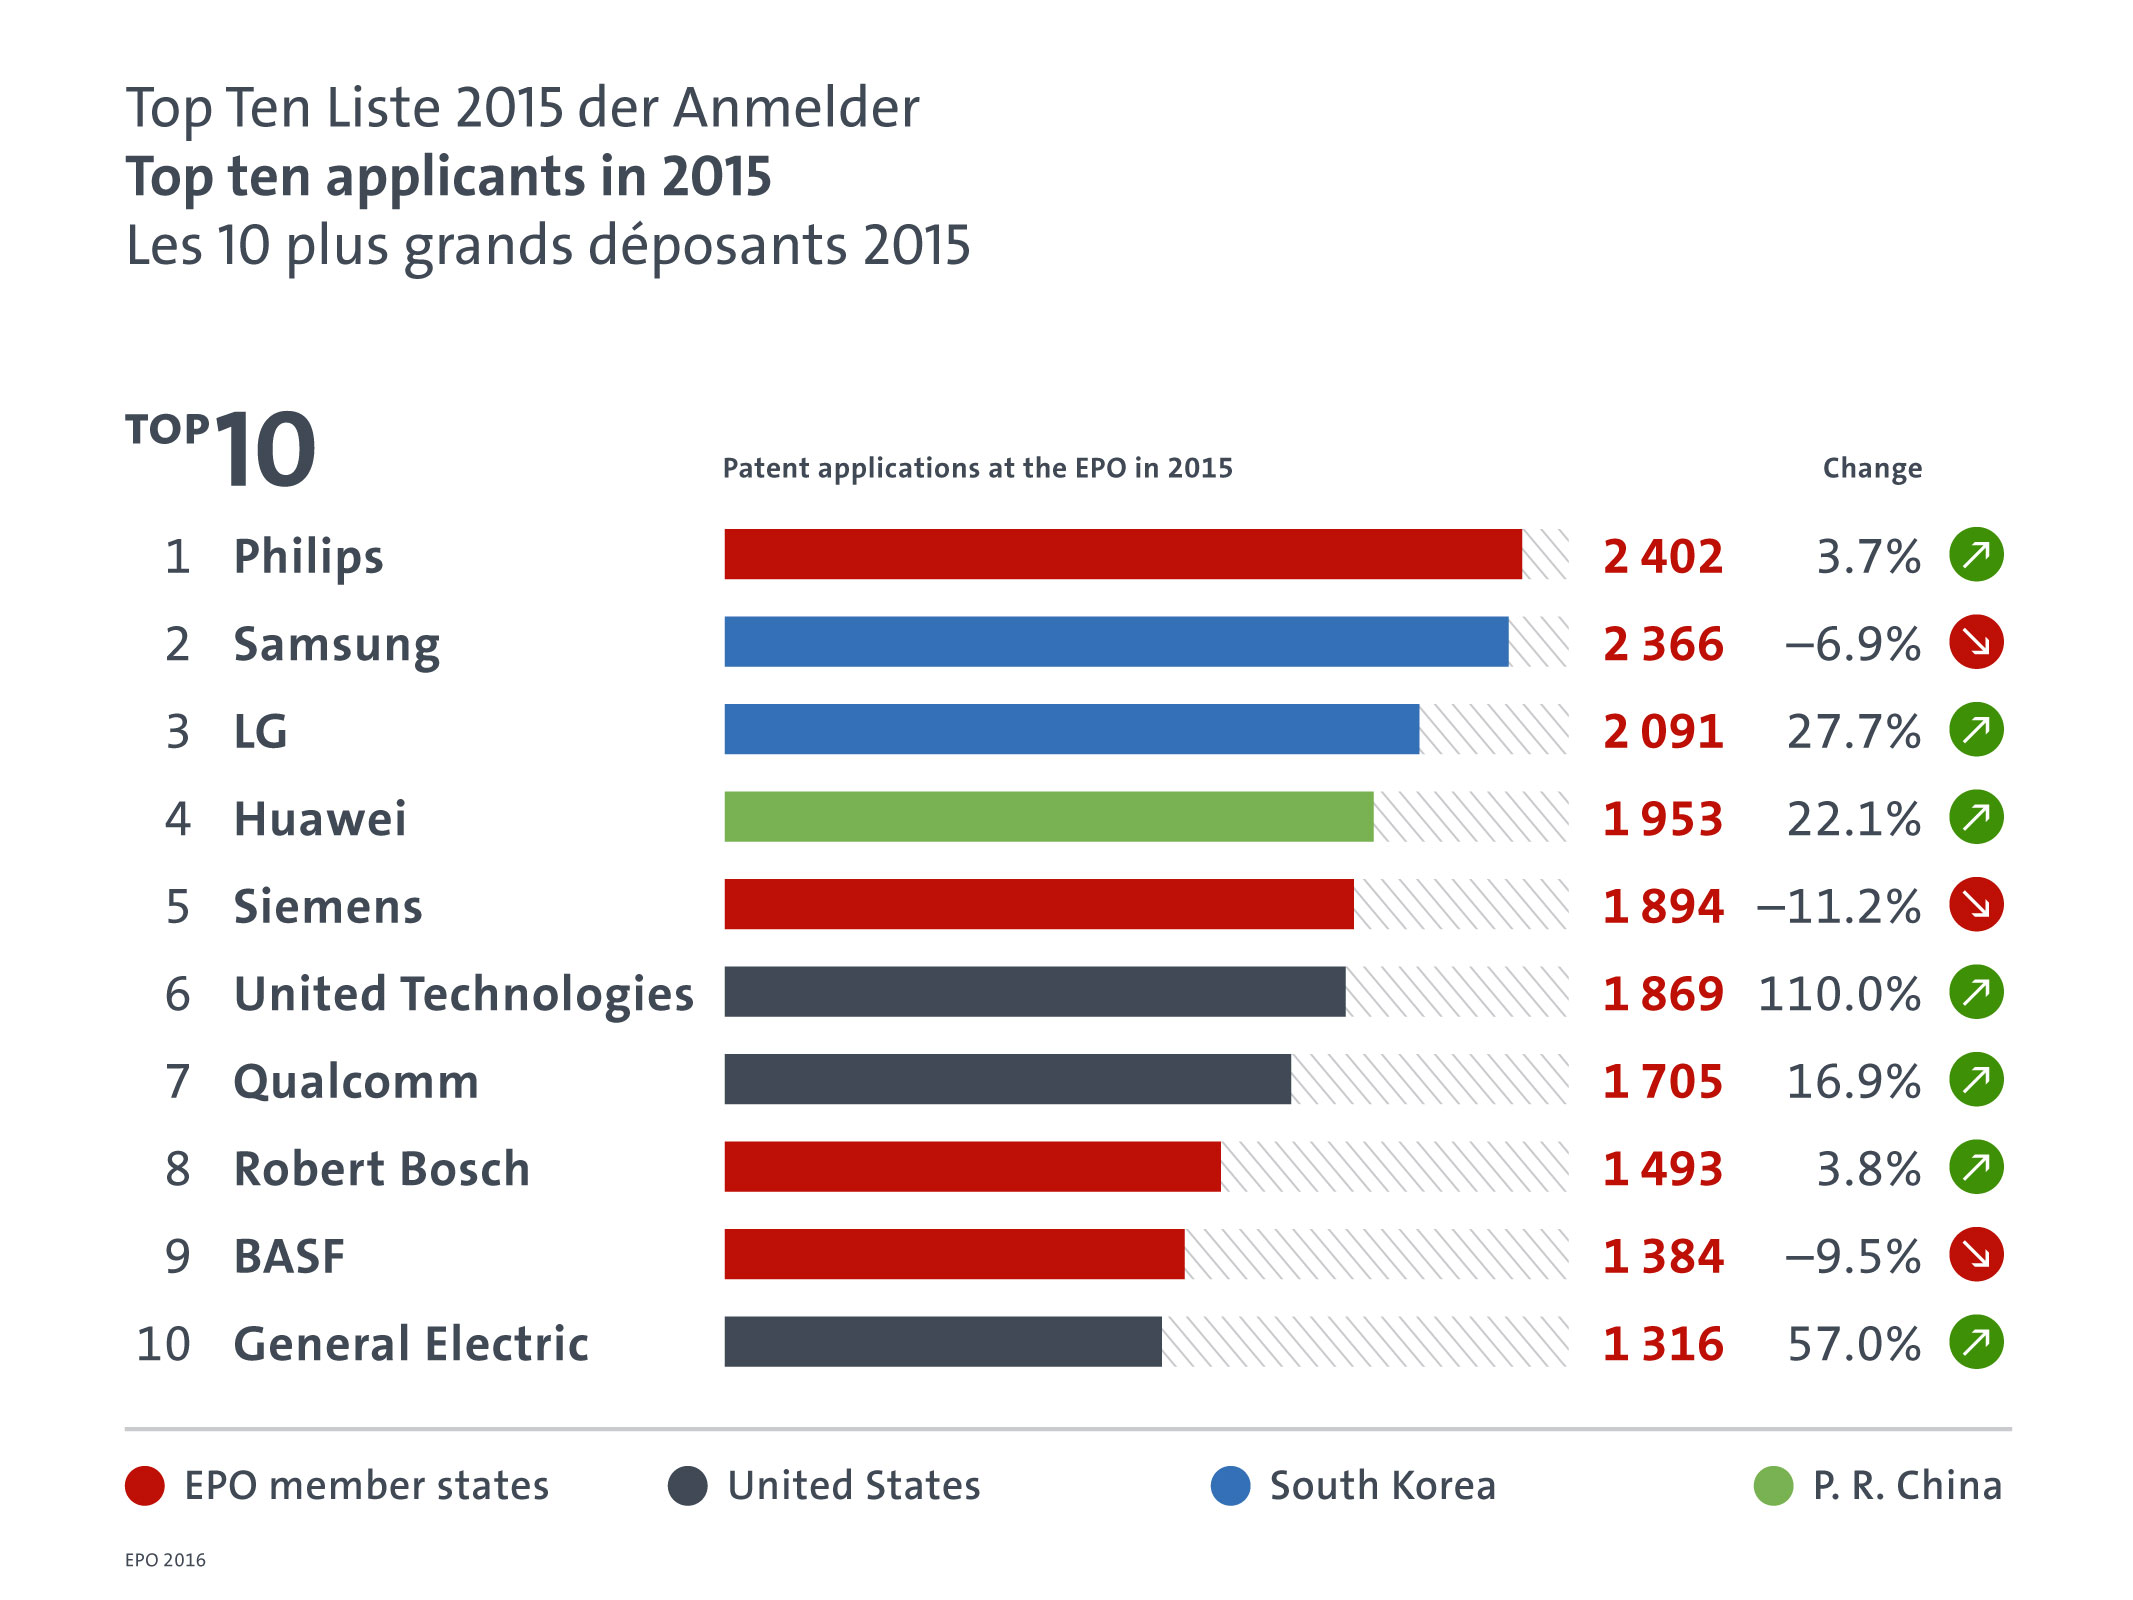 japanese companies in germany a case A lot has changed since our last article on the top 10 largest japanese companies in 2010among some of the biggest changes are the rise of japanese motor companies (toyota, honda and nissan all rank in the latest 2014 list) and the disappearance of business services companies like canon from the top 10.